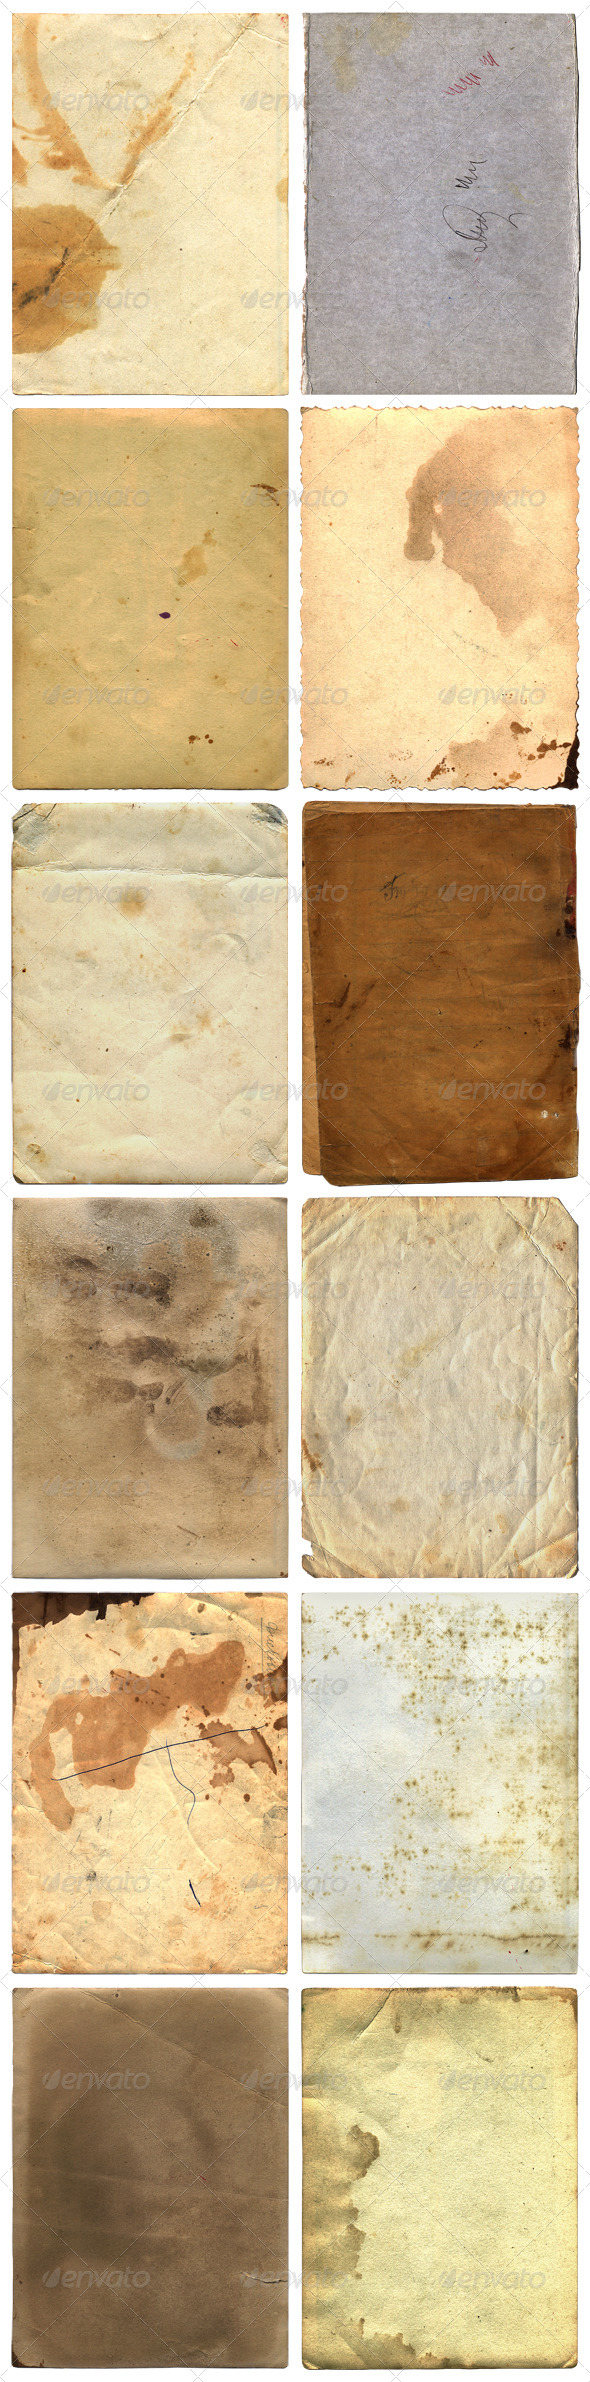 Grunge Paper Backgrounds And Textures - Paper Textures